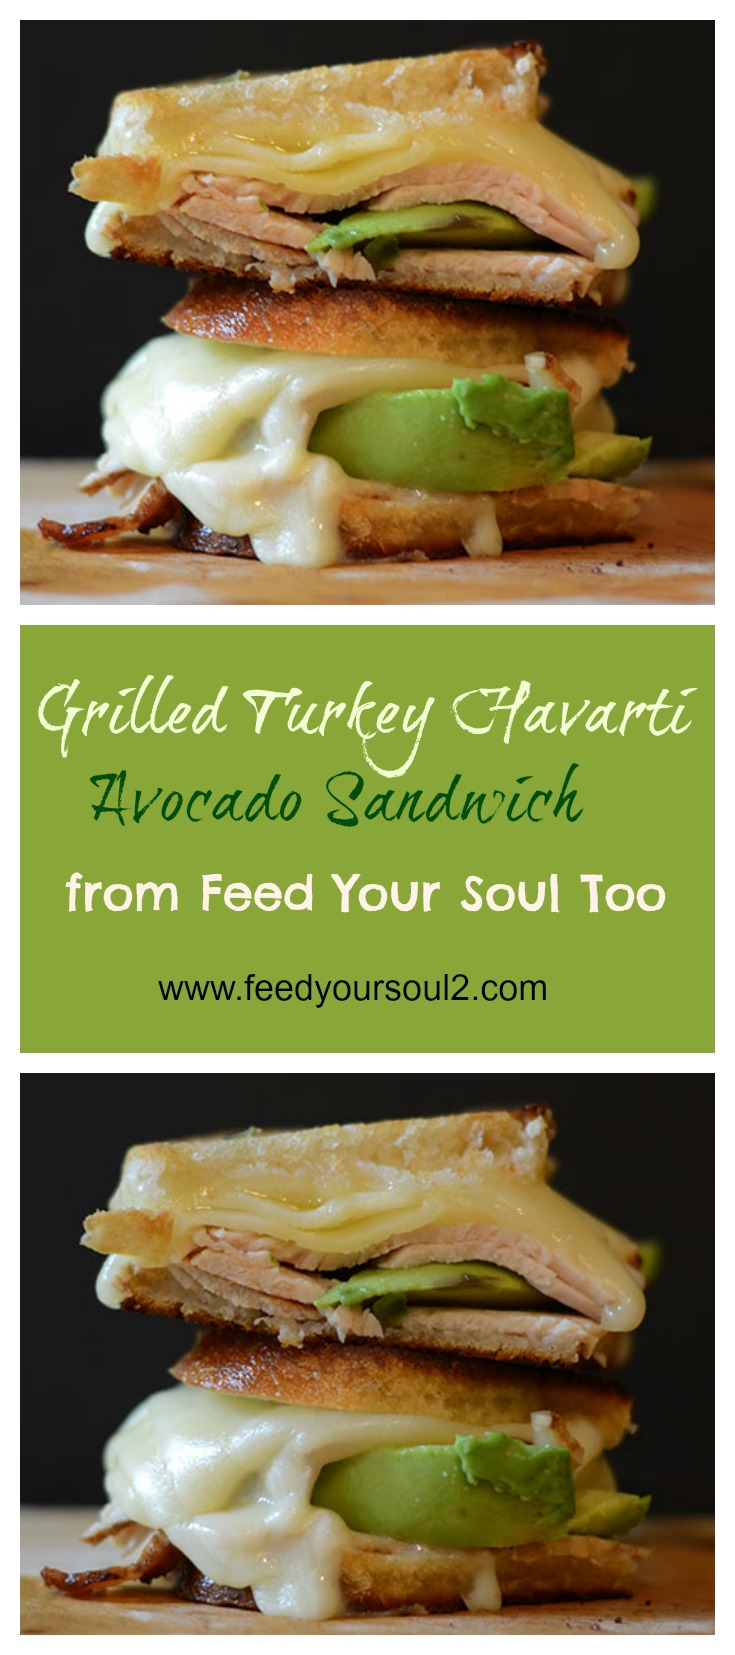 Grilled Turkey Havarti & Avocado Sandwich from Feed Your Soul Too #sandwich #grilledcheese